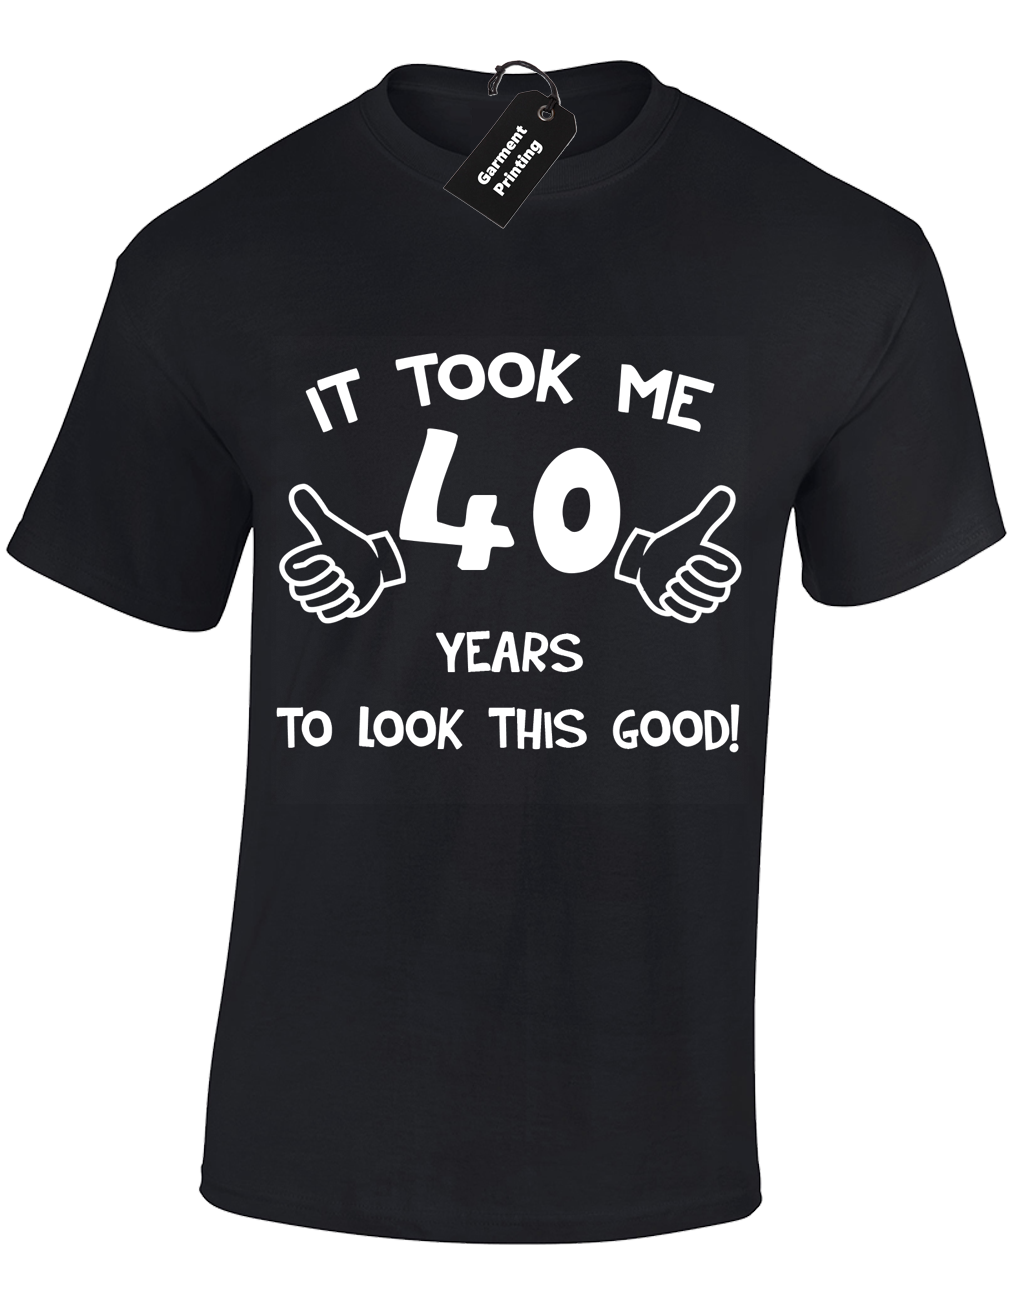 Us 1296 48 Offit Took Me 40 Years Mens T Shirt Funny Gift Idea Top Present 40th Birthday Gift Print T Shirthip Hop Tee Shirt2019 Hot Tees In